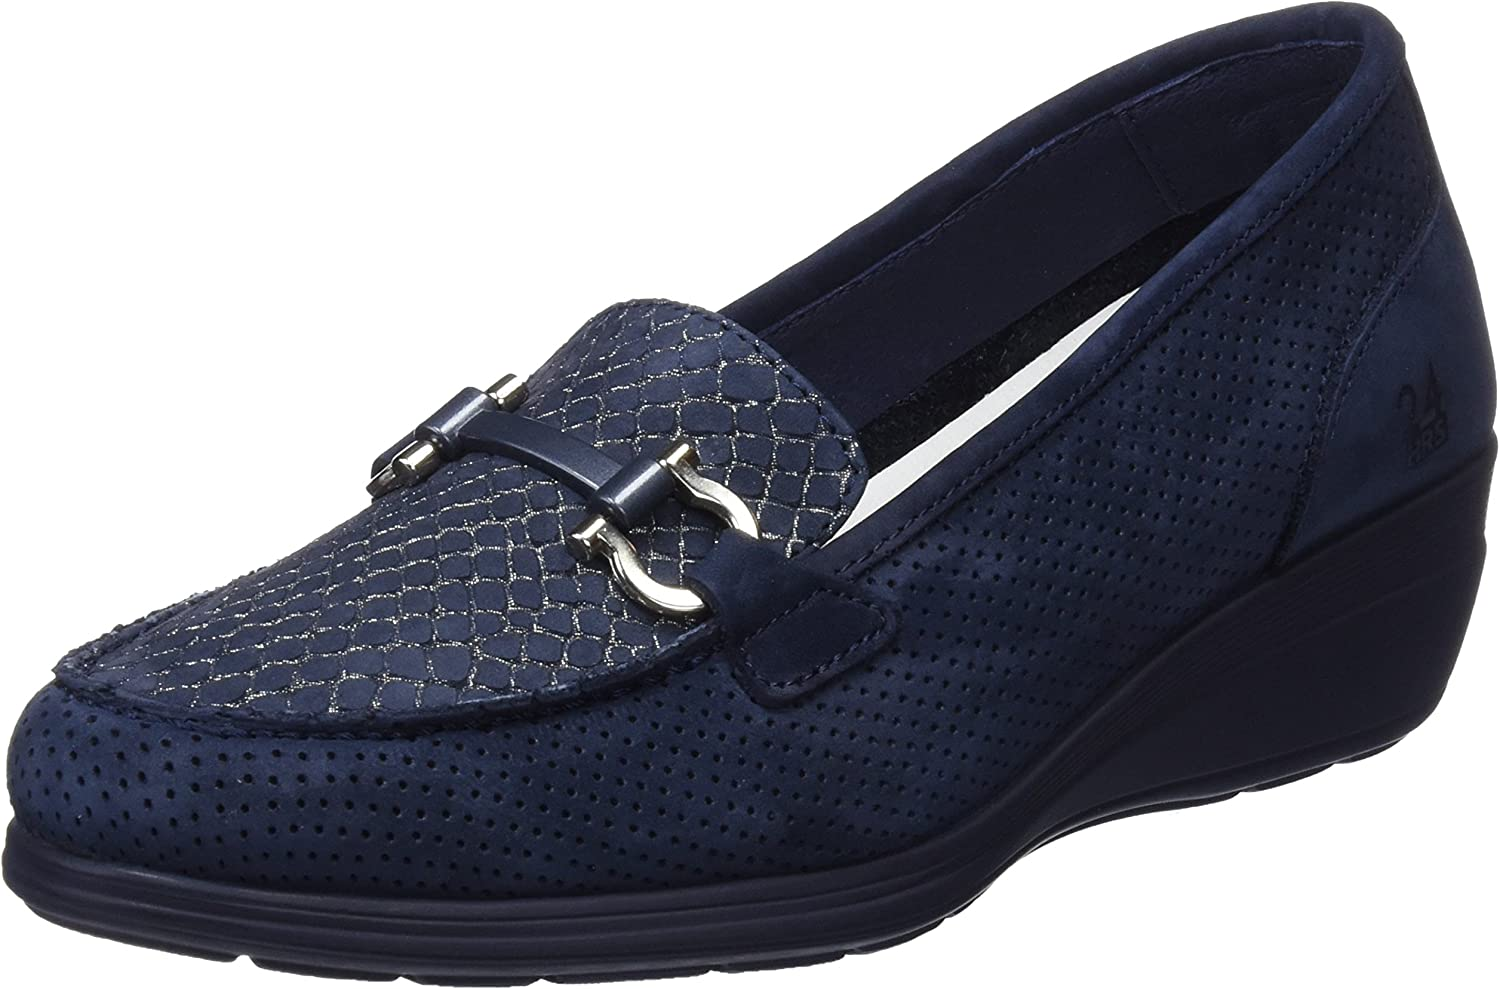 24 Large discharge sale HORAS Max 59% OFF Women's Moccasins